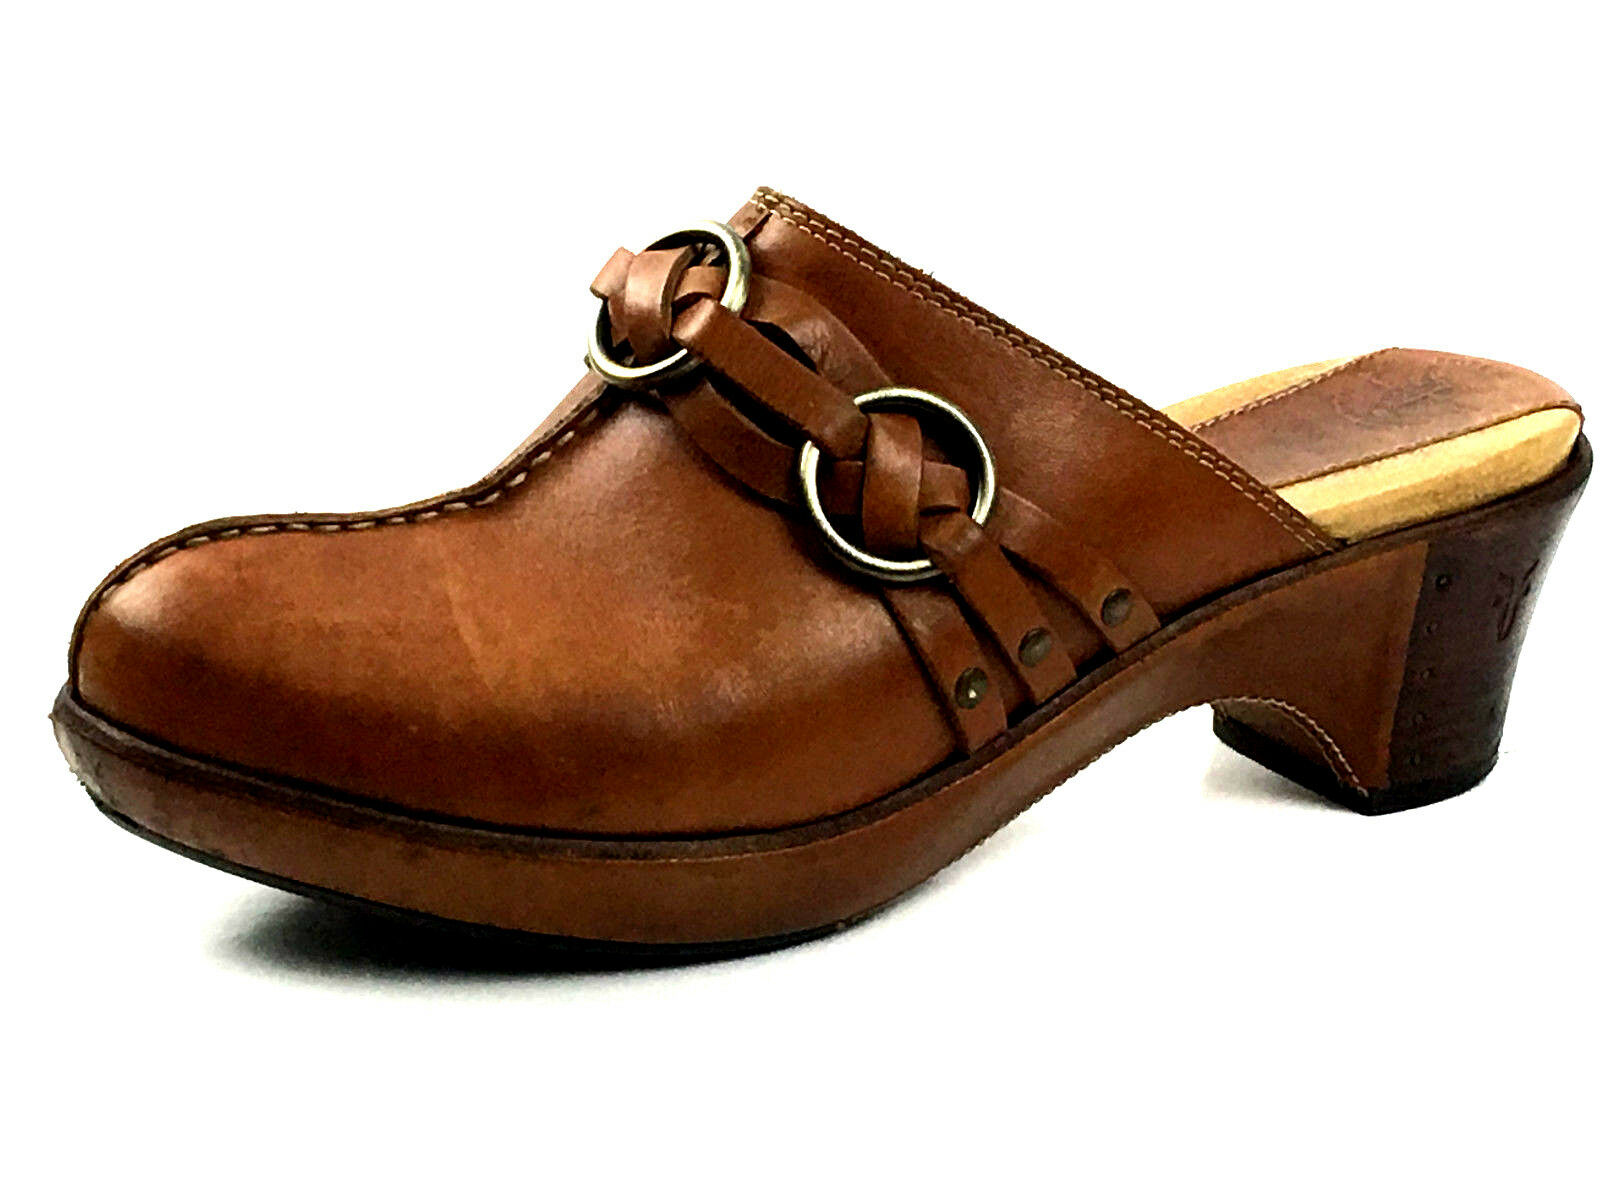 Frye 70121 Women's Clogs Mules Brown Size US.9 UK. 7 EU. 39-40